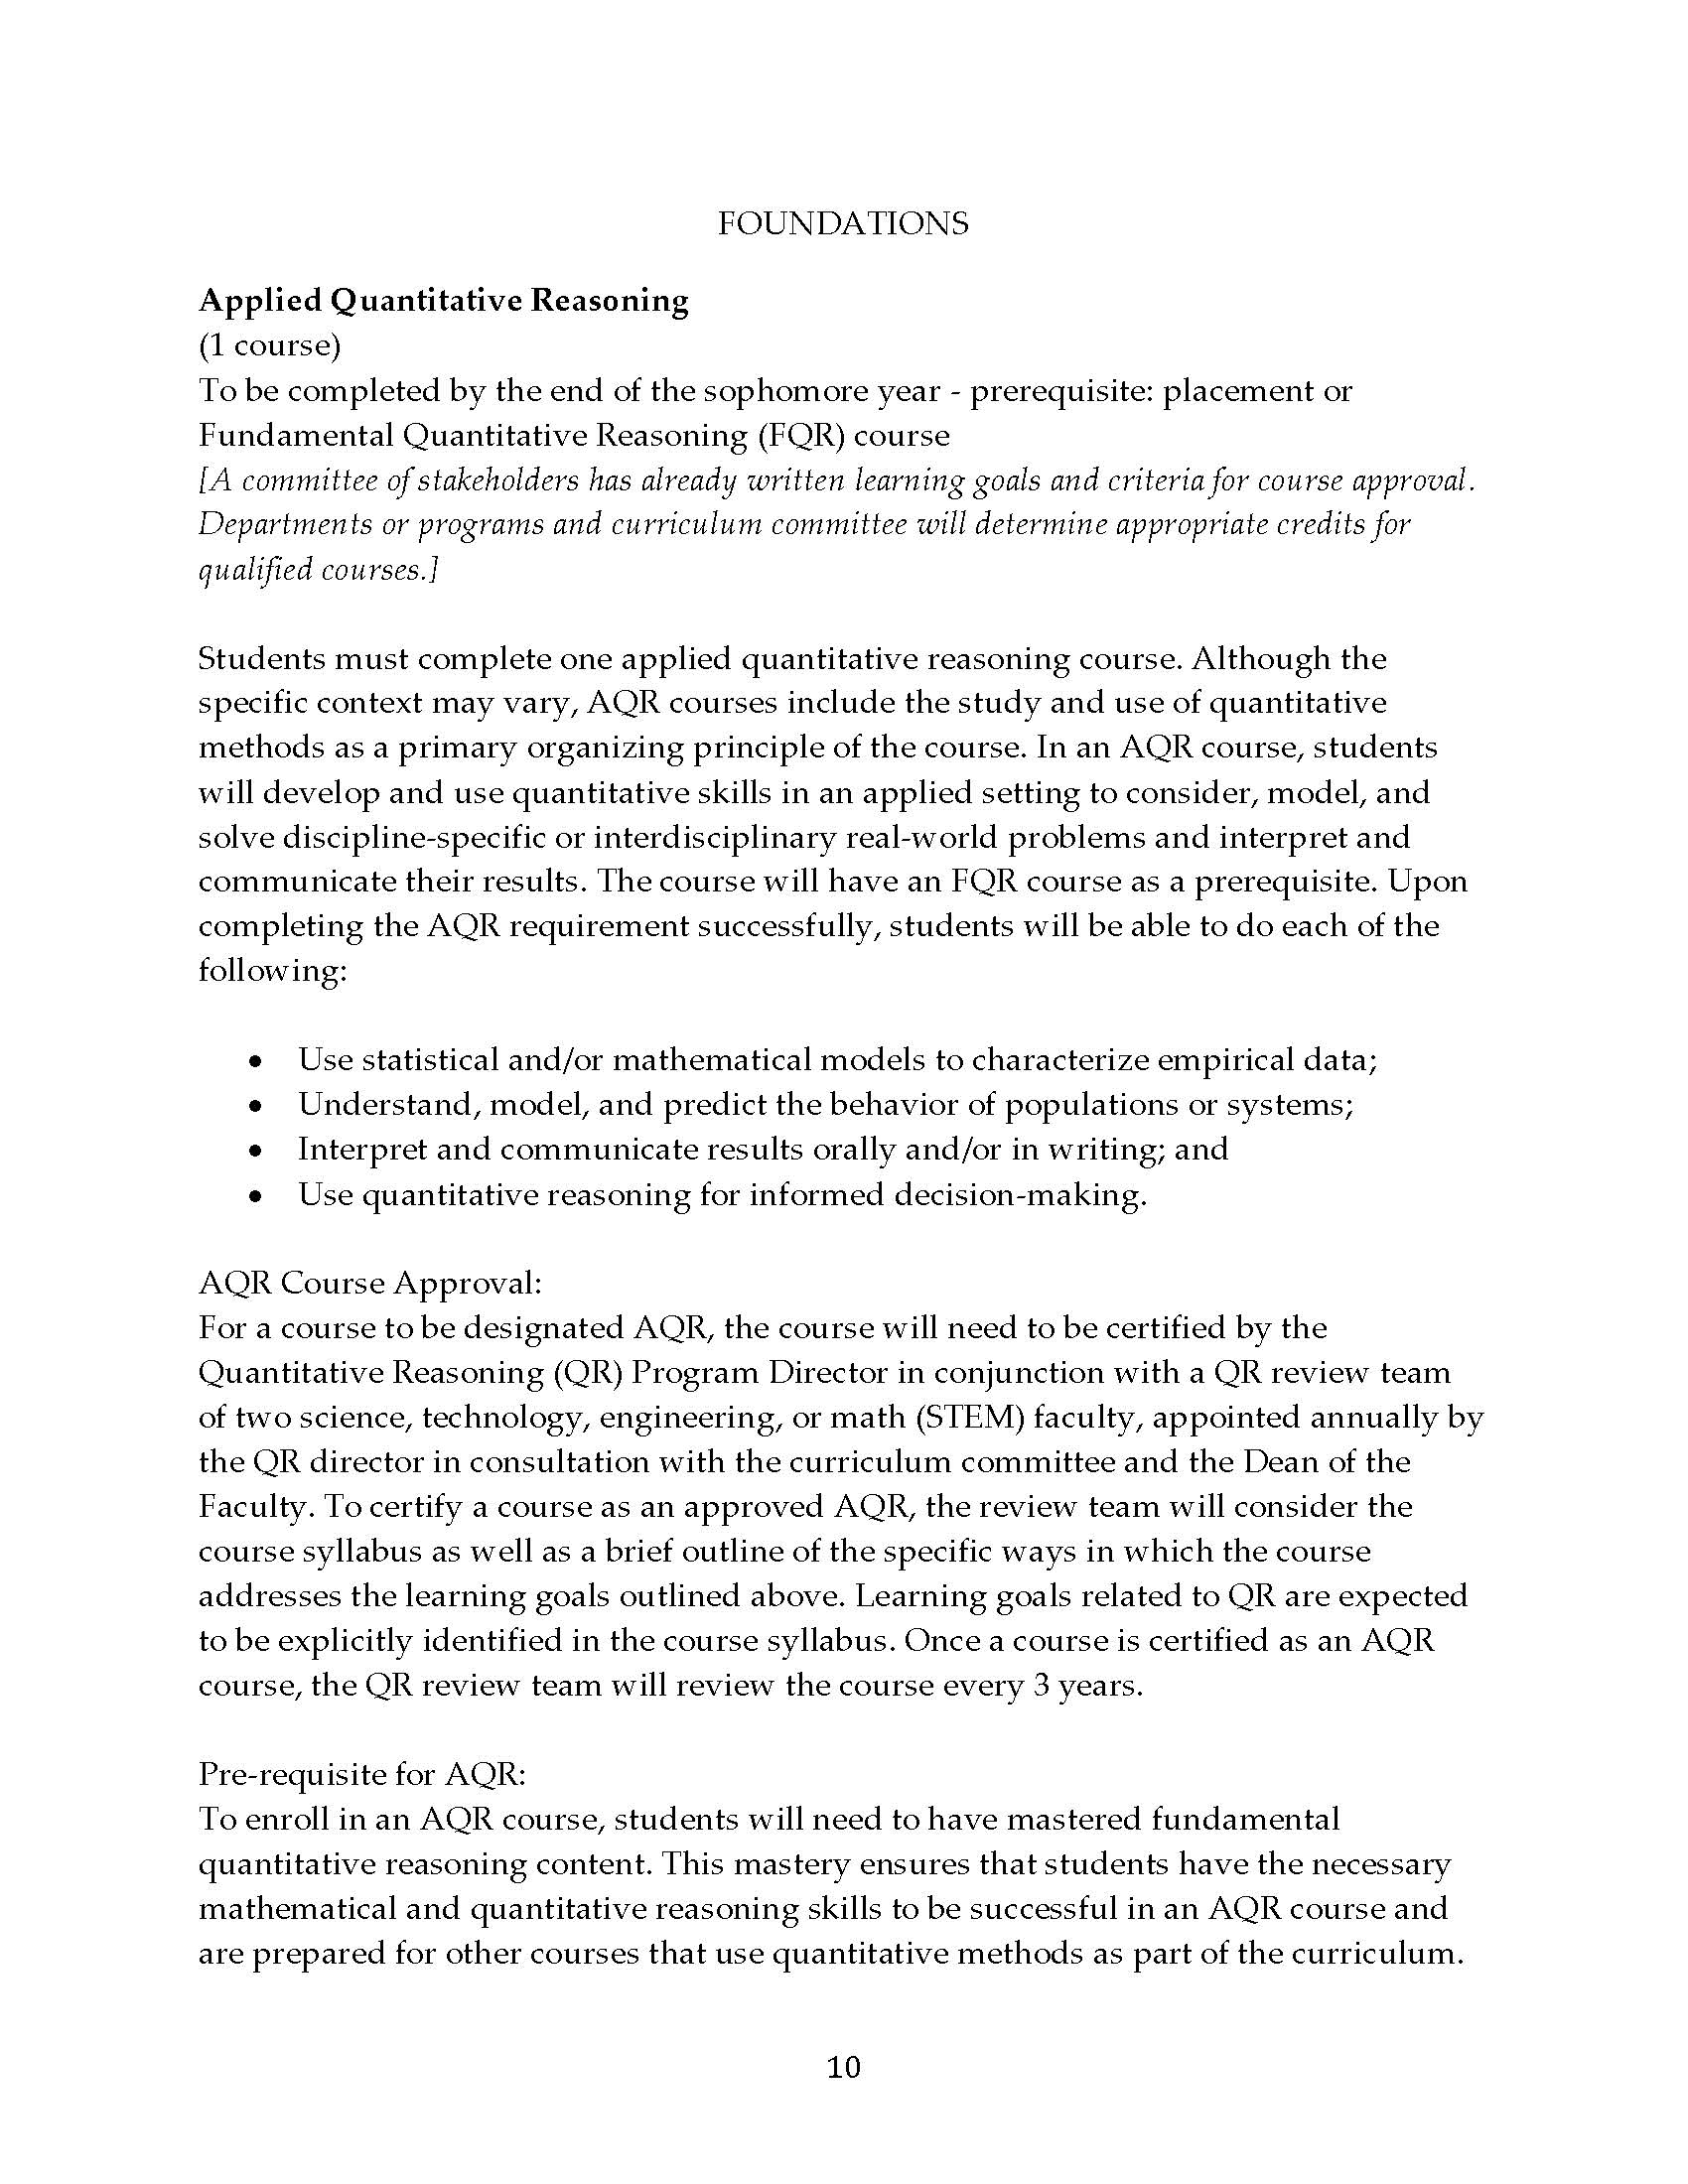 General Education Proposal February 28 2017_Page_10.jpg